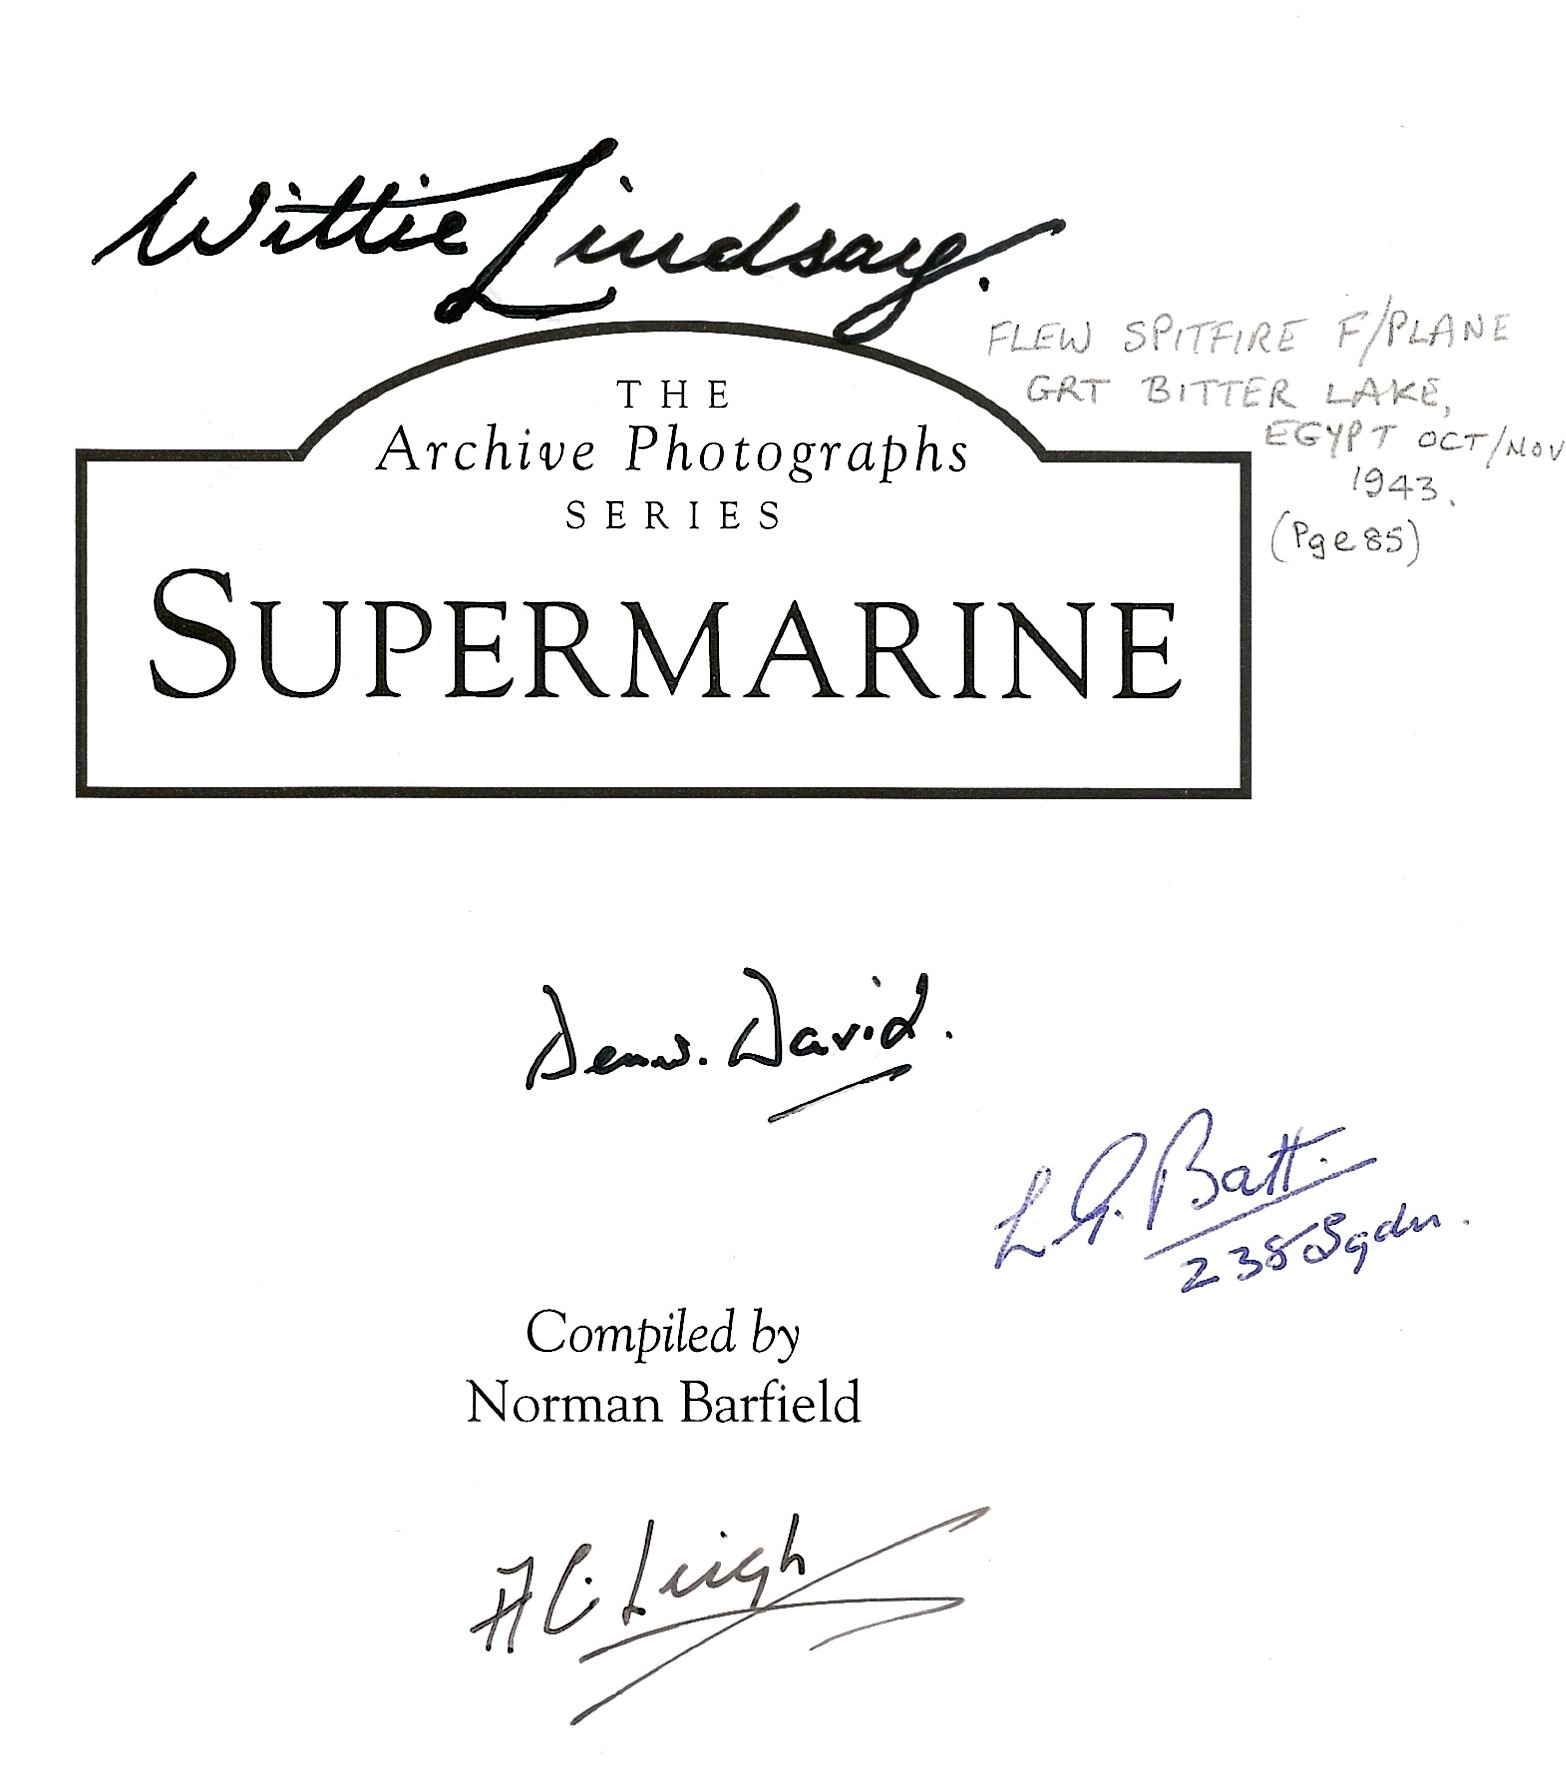 WW2. Norman Barfielf, SUPERMARINE Paperback Multi Signed book. First Edition. Good condition. All